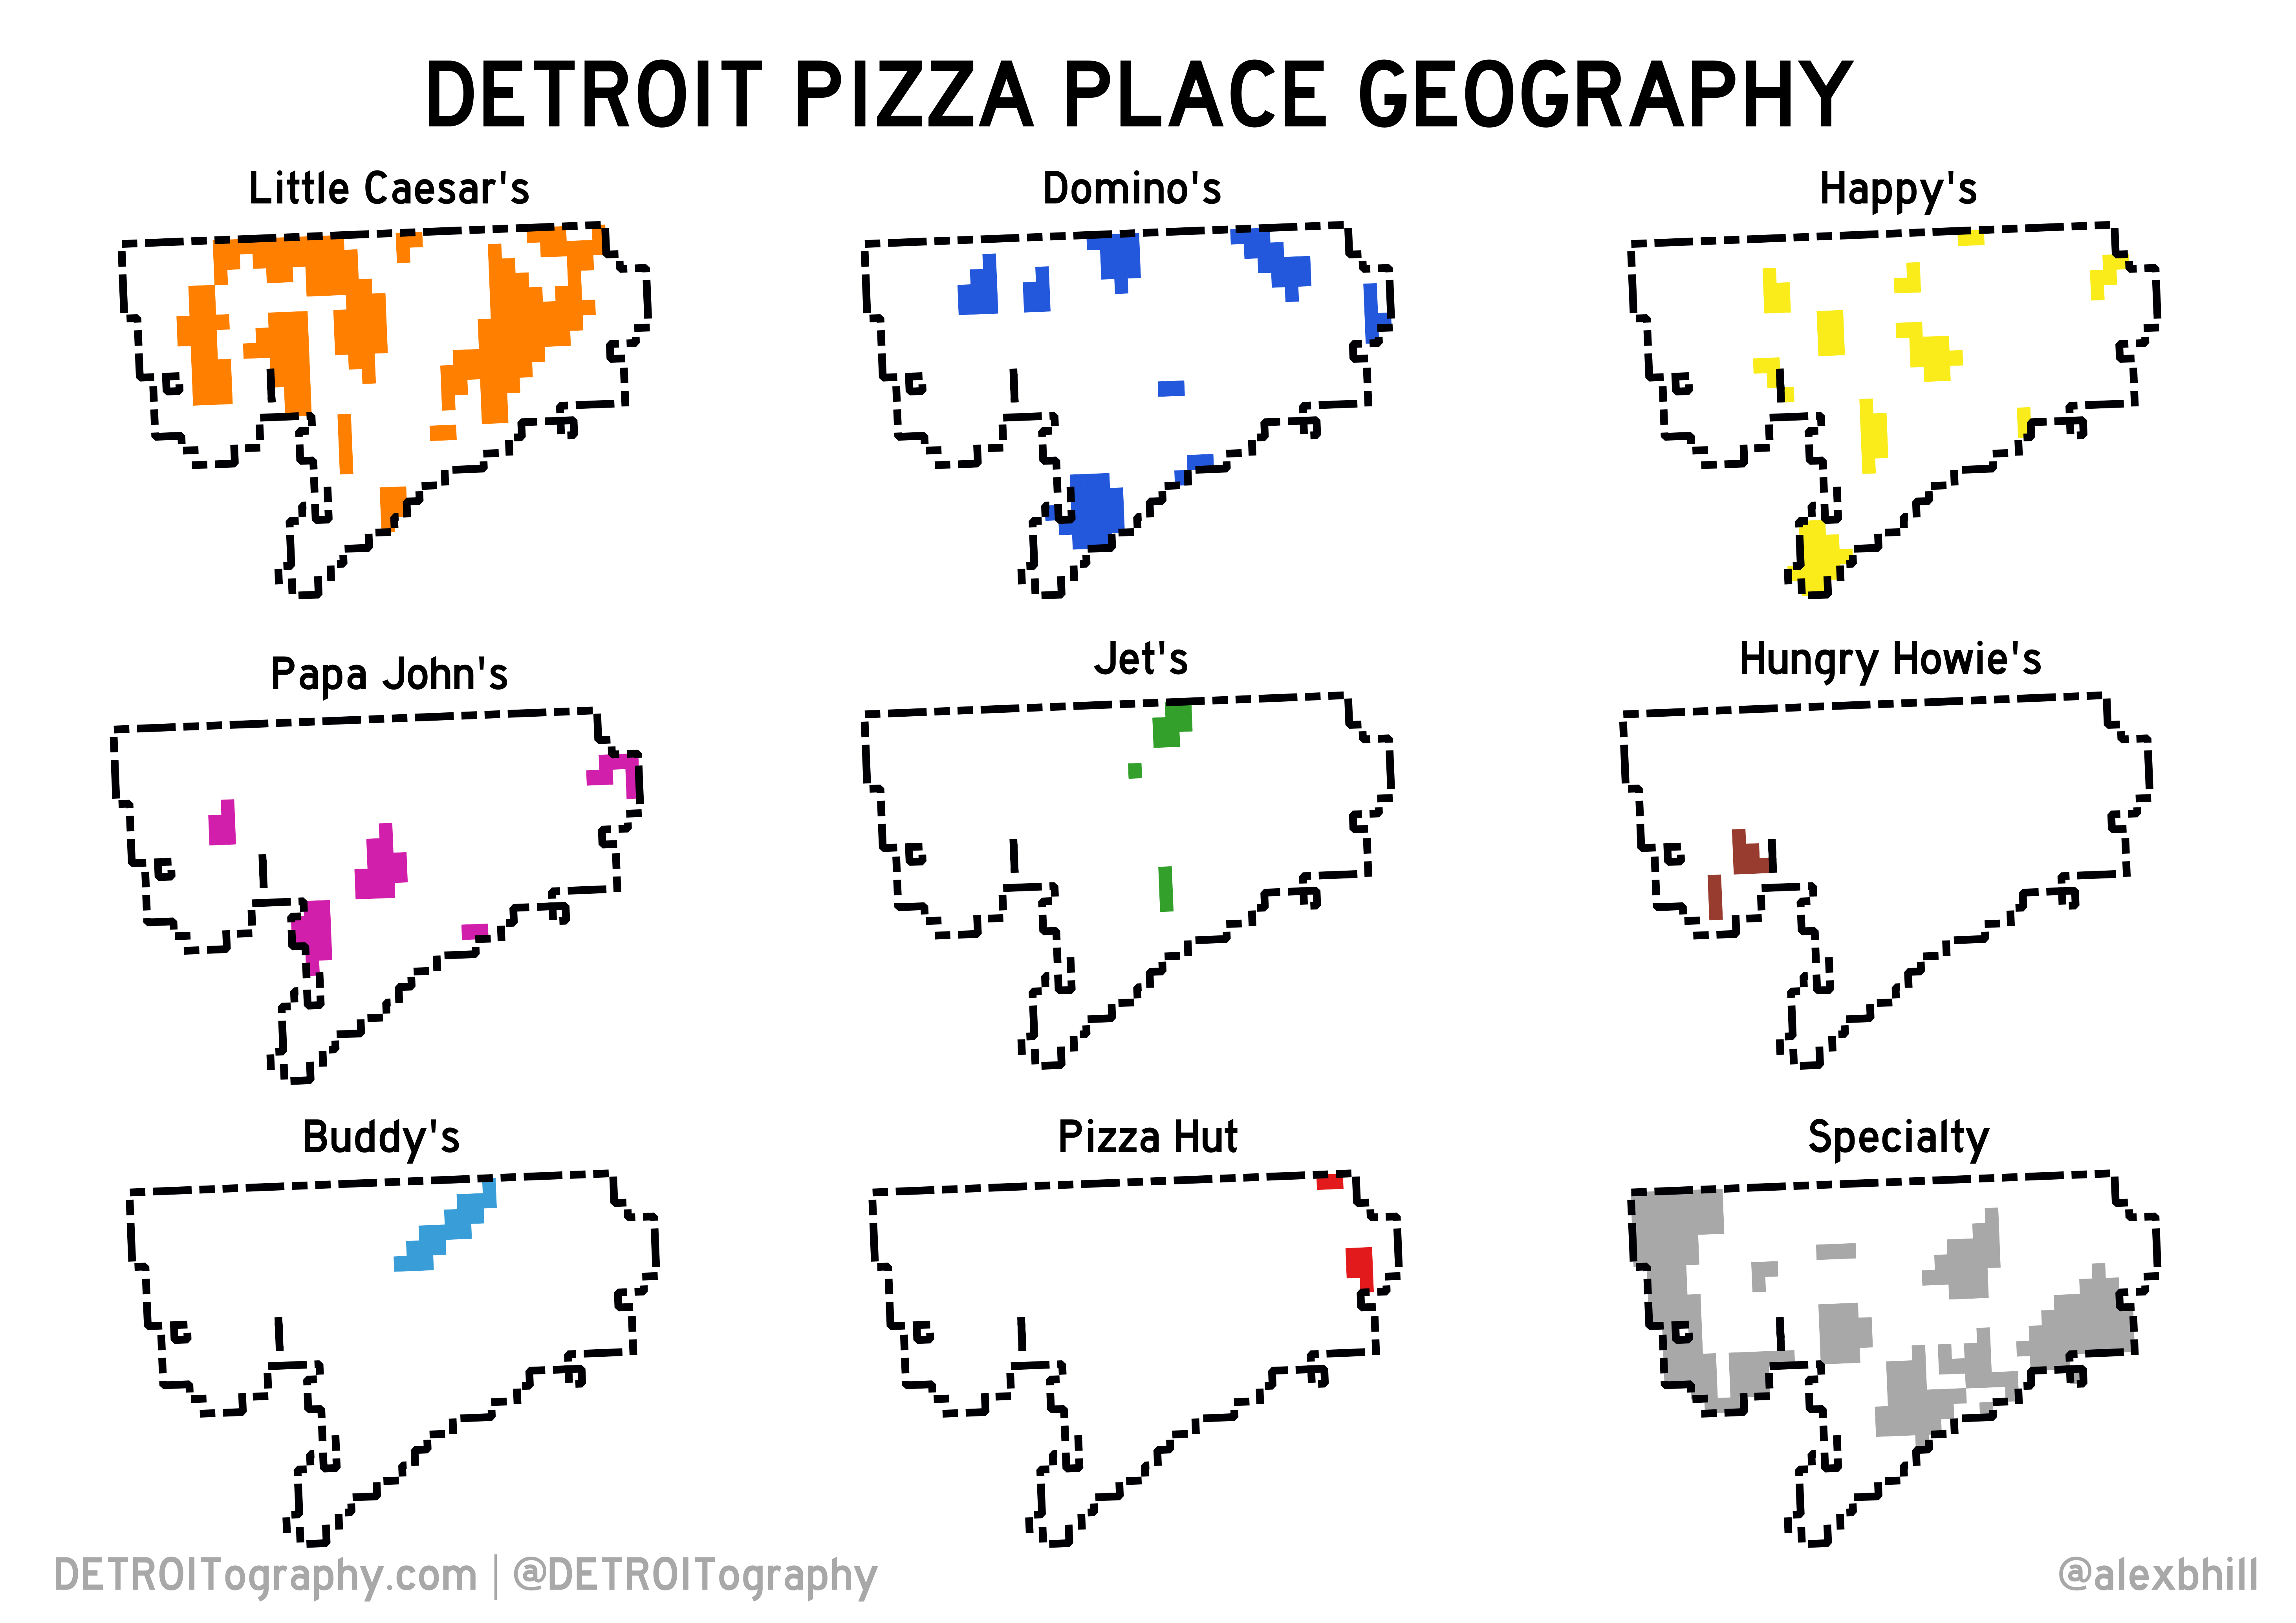 Detroit-pizza-geography-multiples